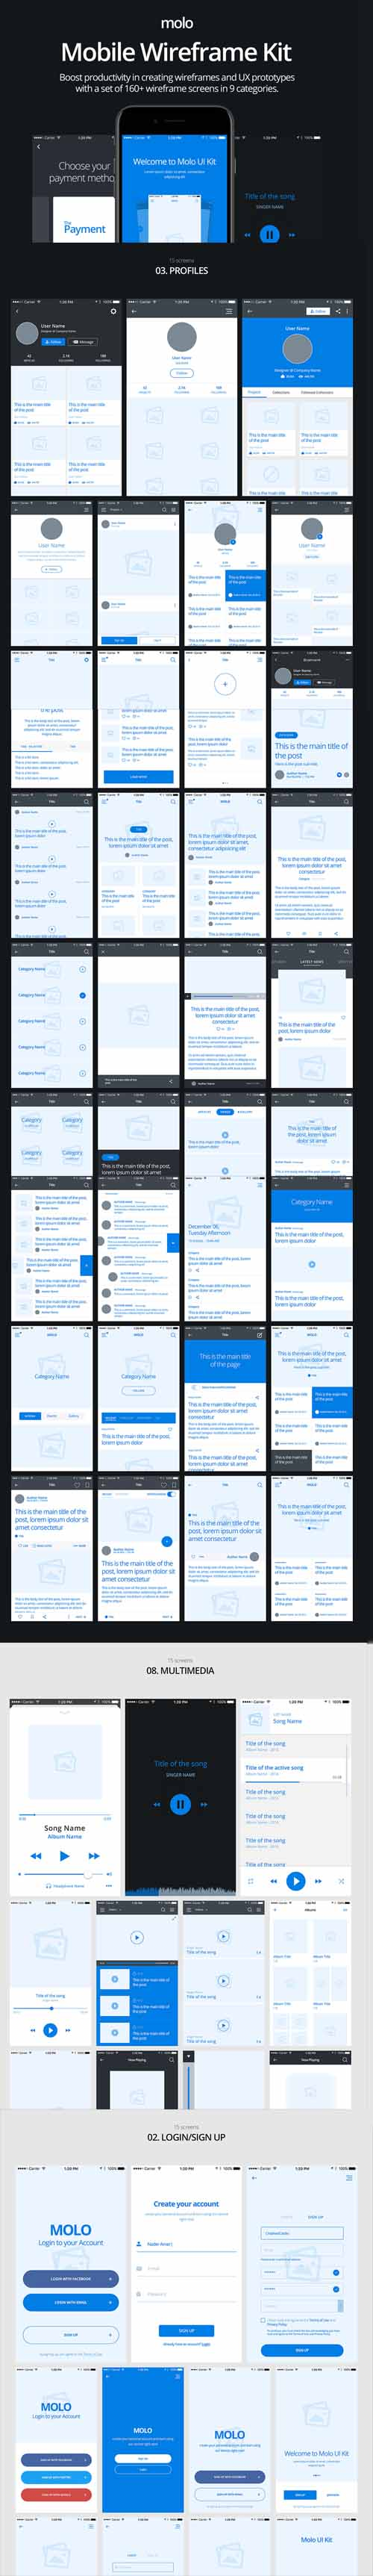 Molo Mobile Wireframe Kit